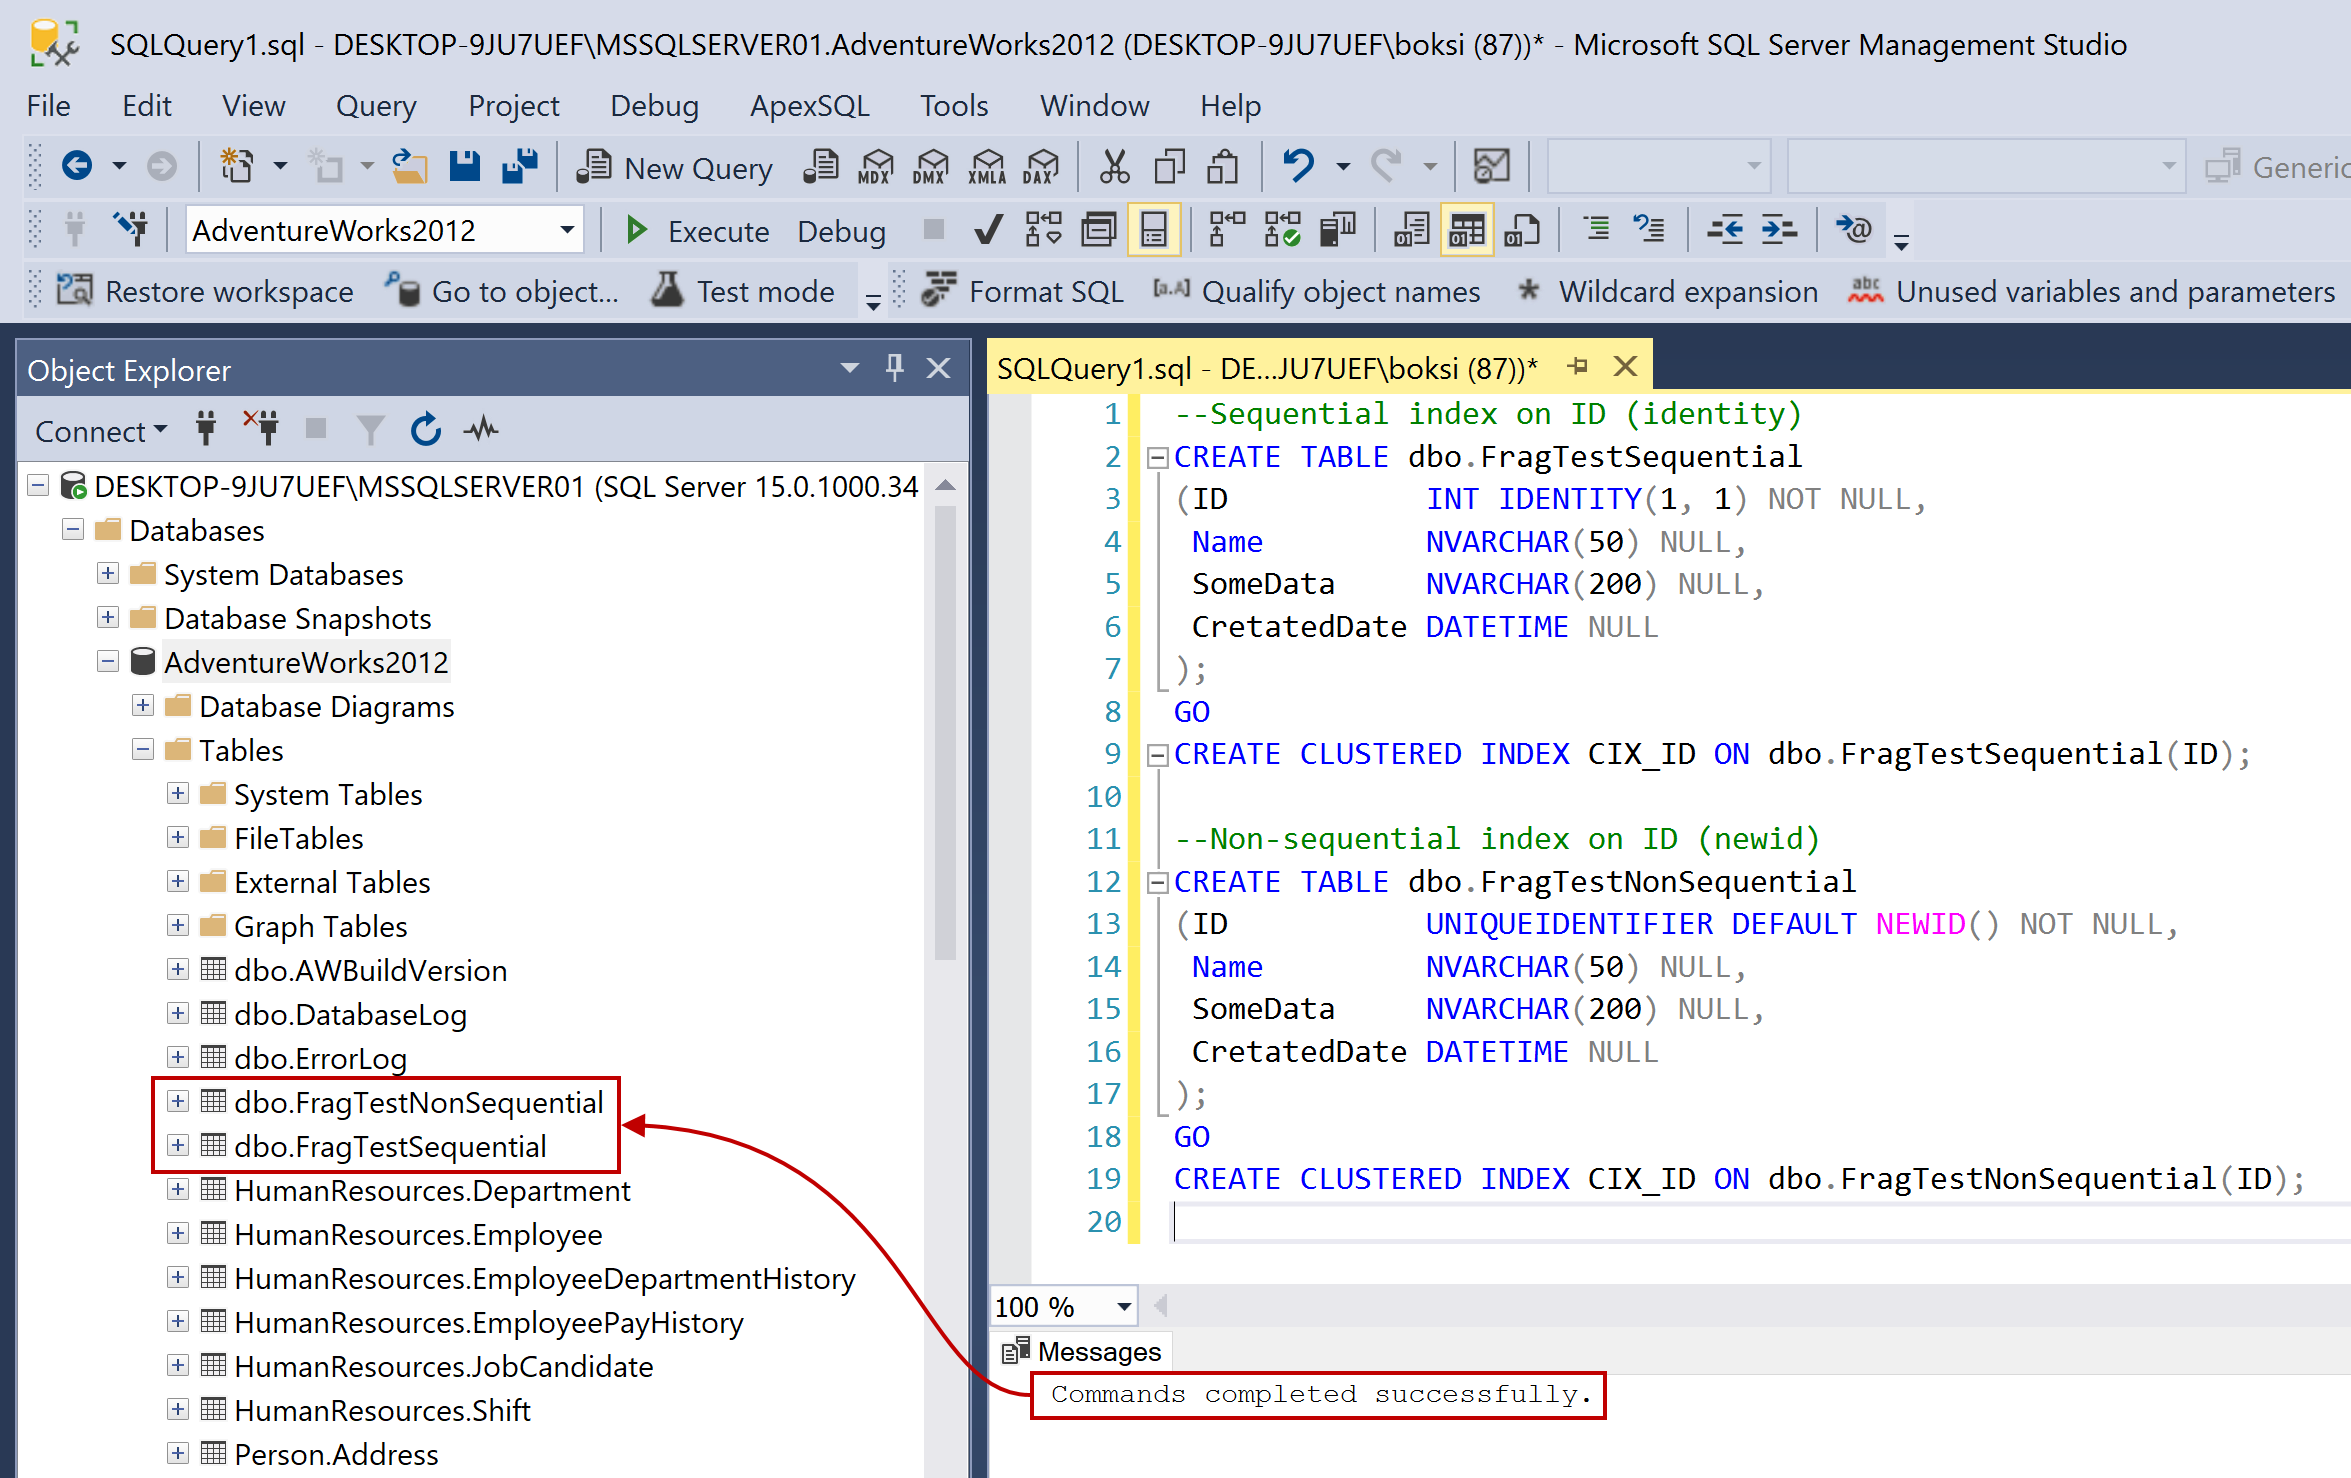 A successfully executed script in SSMS for creating two new tables